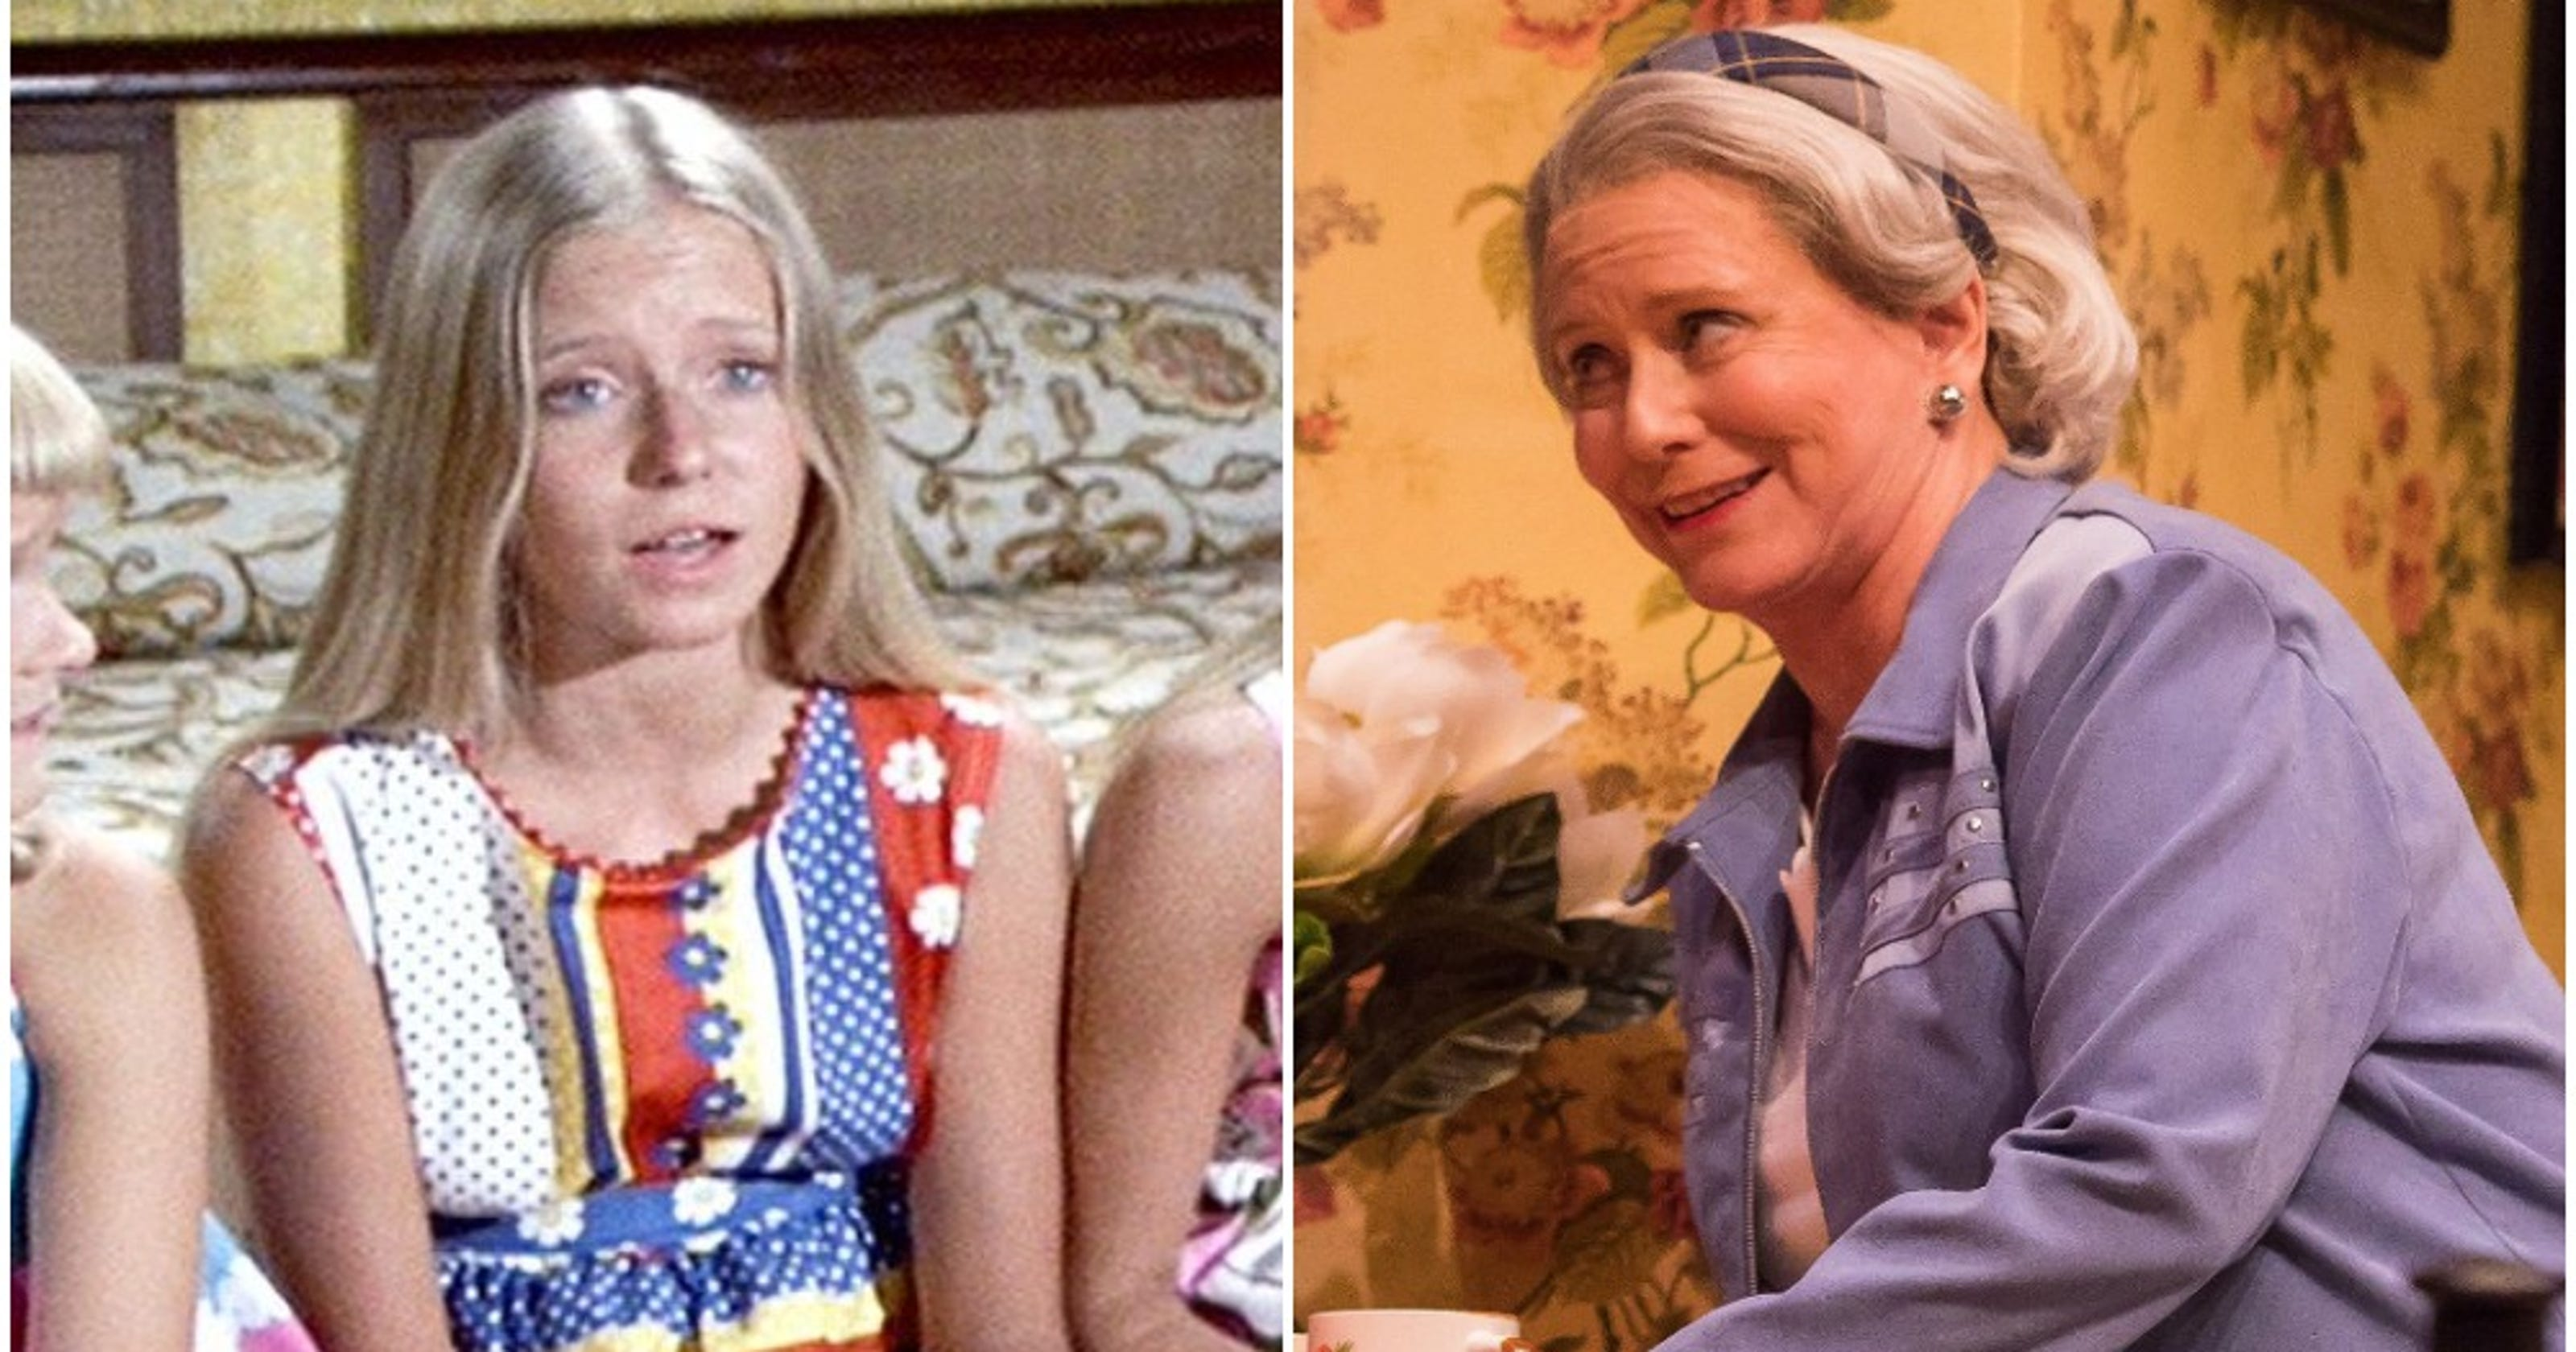 Brady Bunch actress Eve Plumb (she was Jan) stars in Rochester play